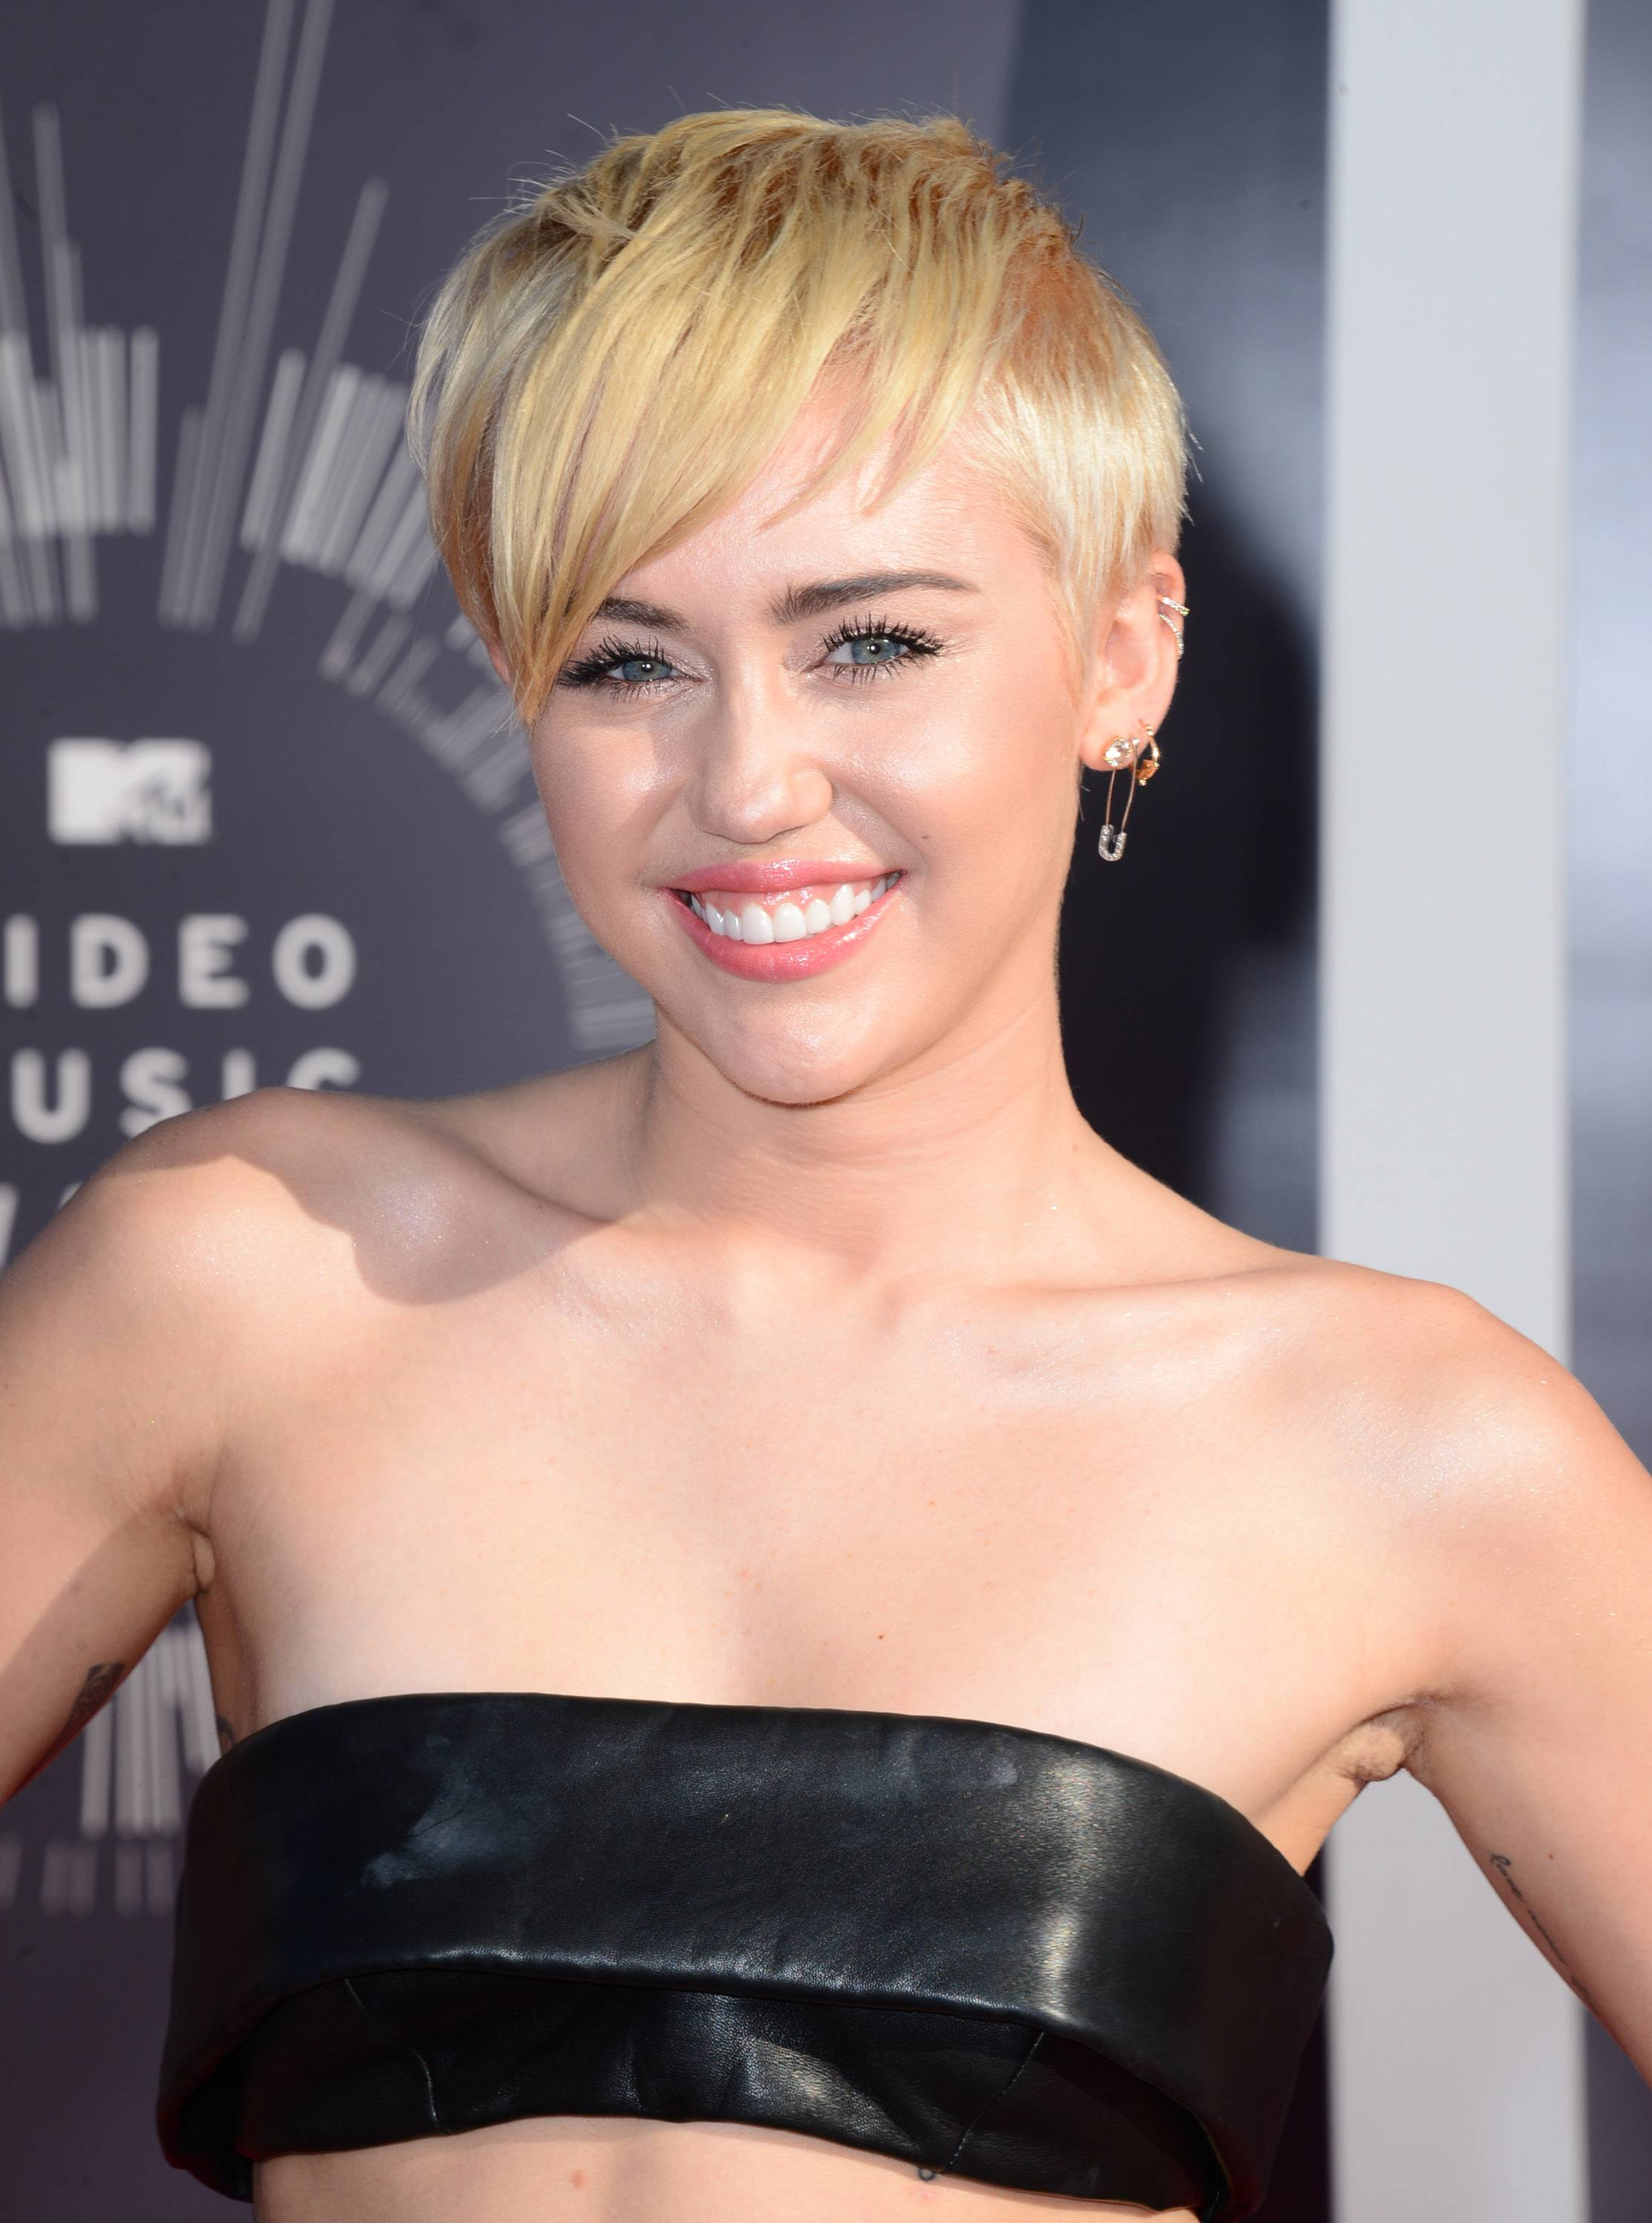 Miley Cyrus said the high of winning awards and memorable performances doesn't last long, unlike her charity work.